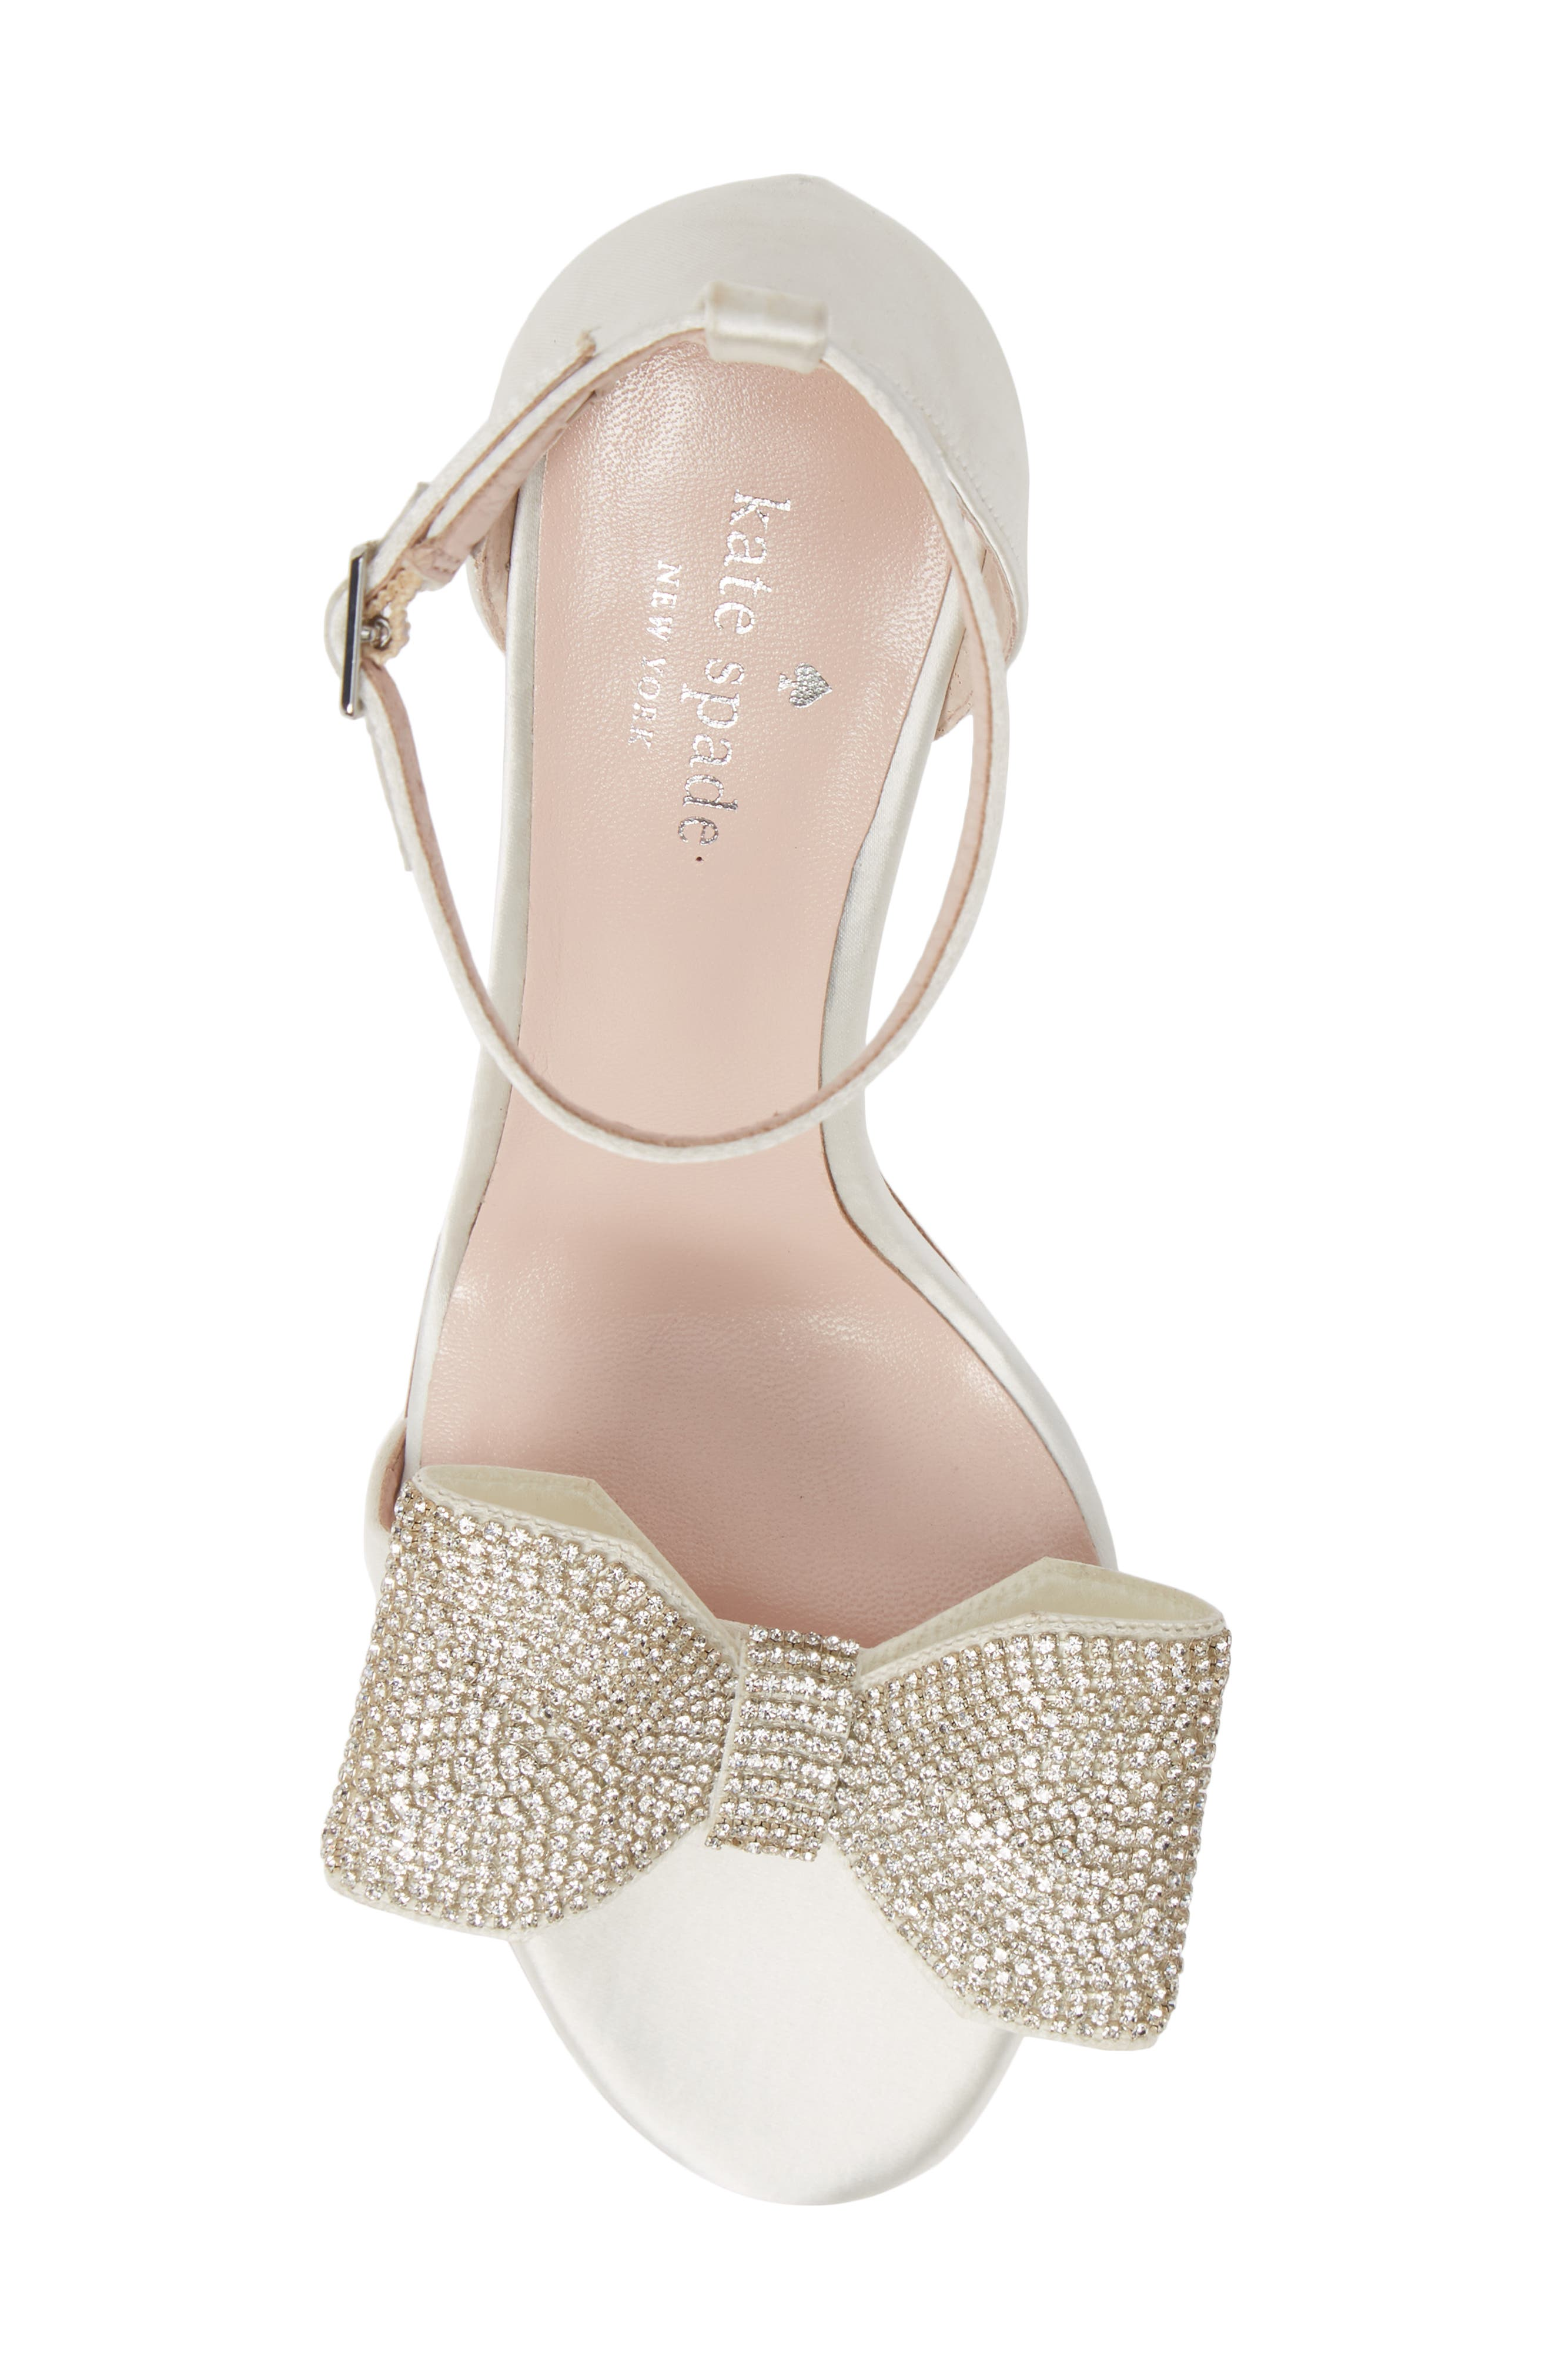 gweneth crystal bow ankle strap sandal,                             Alternate thumbnail 5, color,                             900